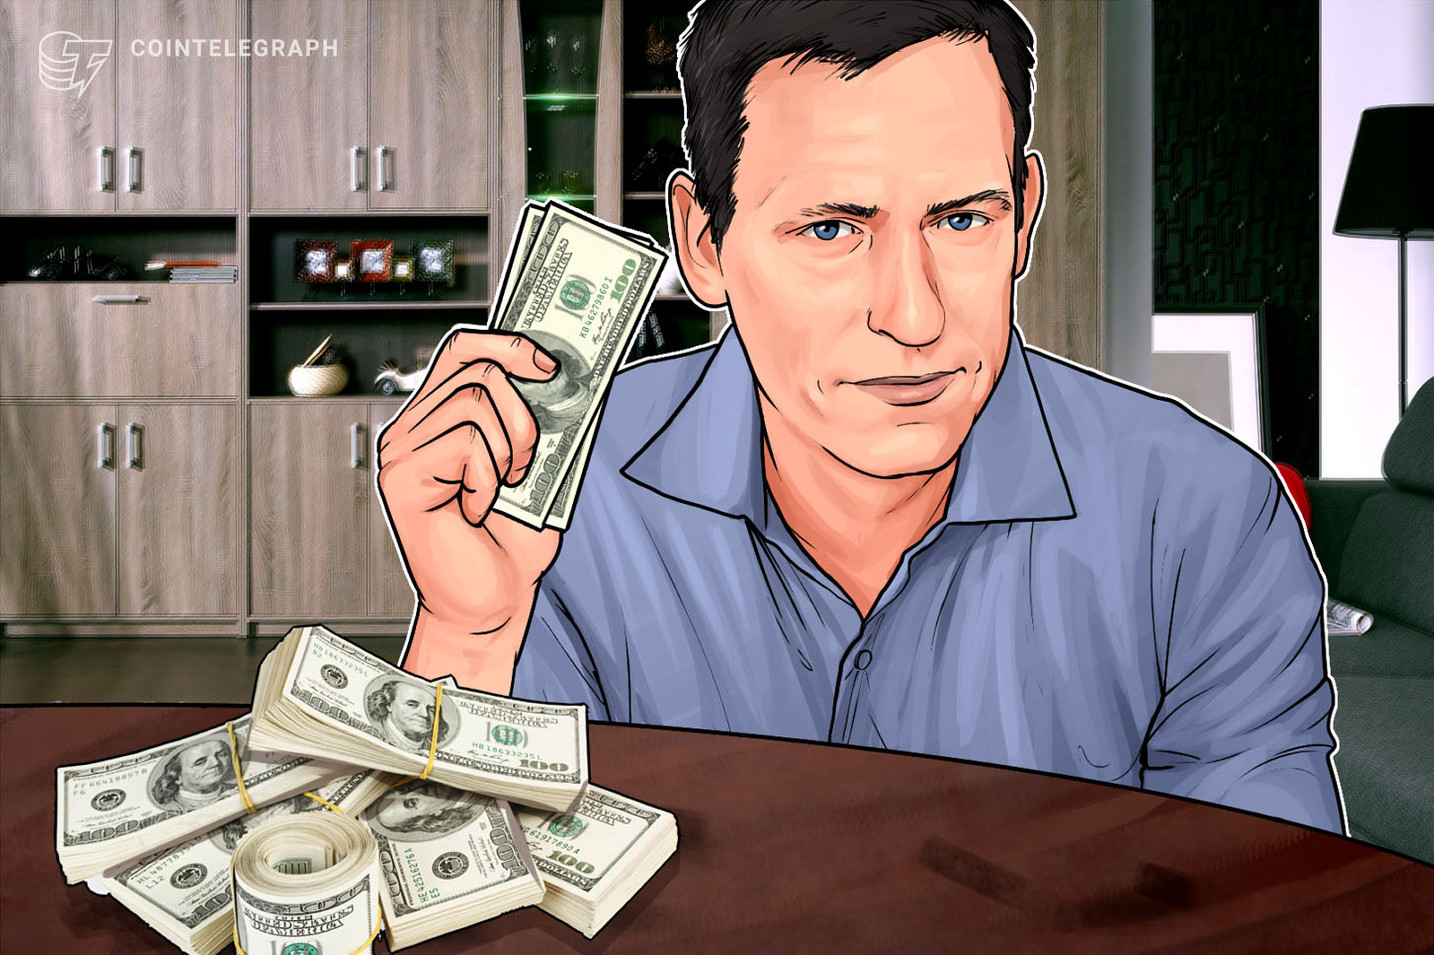 Plataforma de criptoinversión asegura la financiación inicial de Peter Thiel y Digital Currency Group